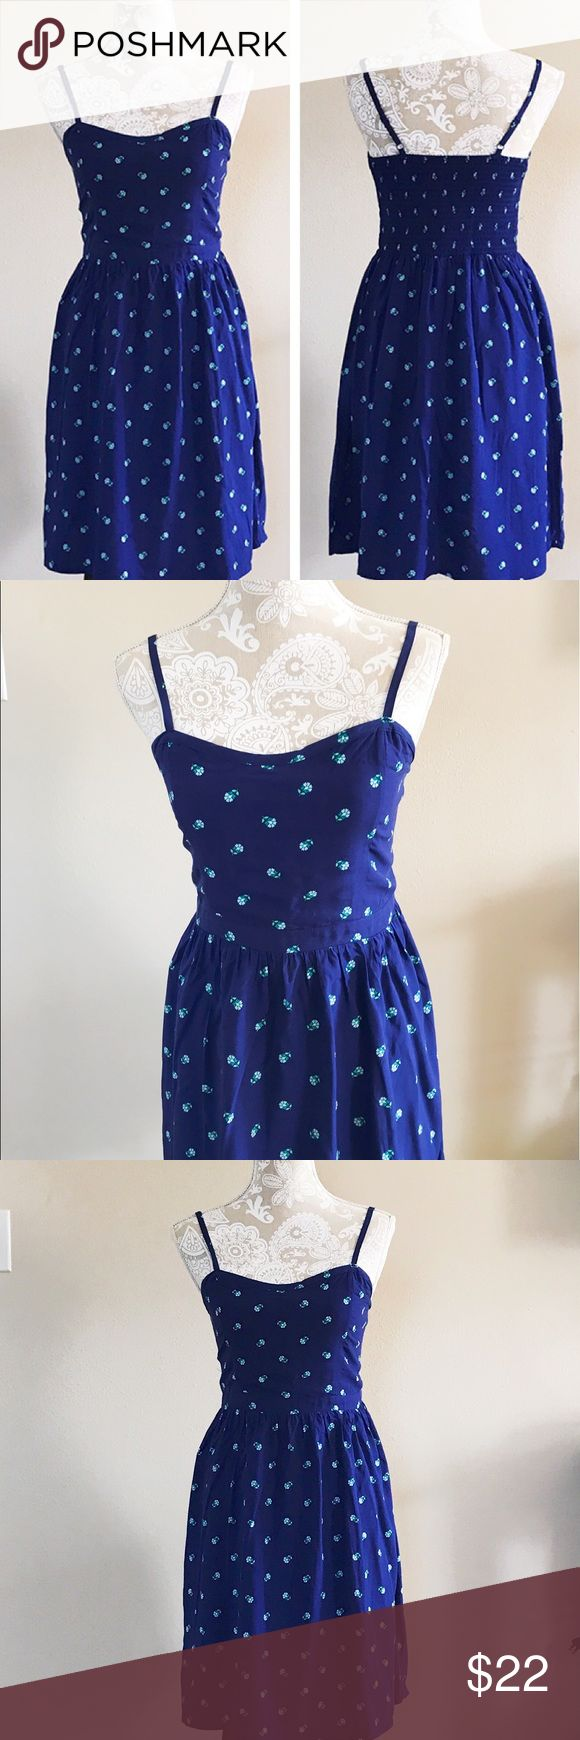 """Old navy sundress New with tag. 100% rayon. Has elastic stretchy back. Dark blue color. Length 36"""". No trades  Old Navy Dresses Midi"""